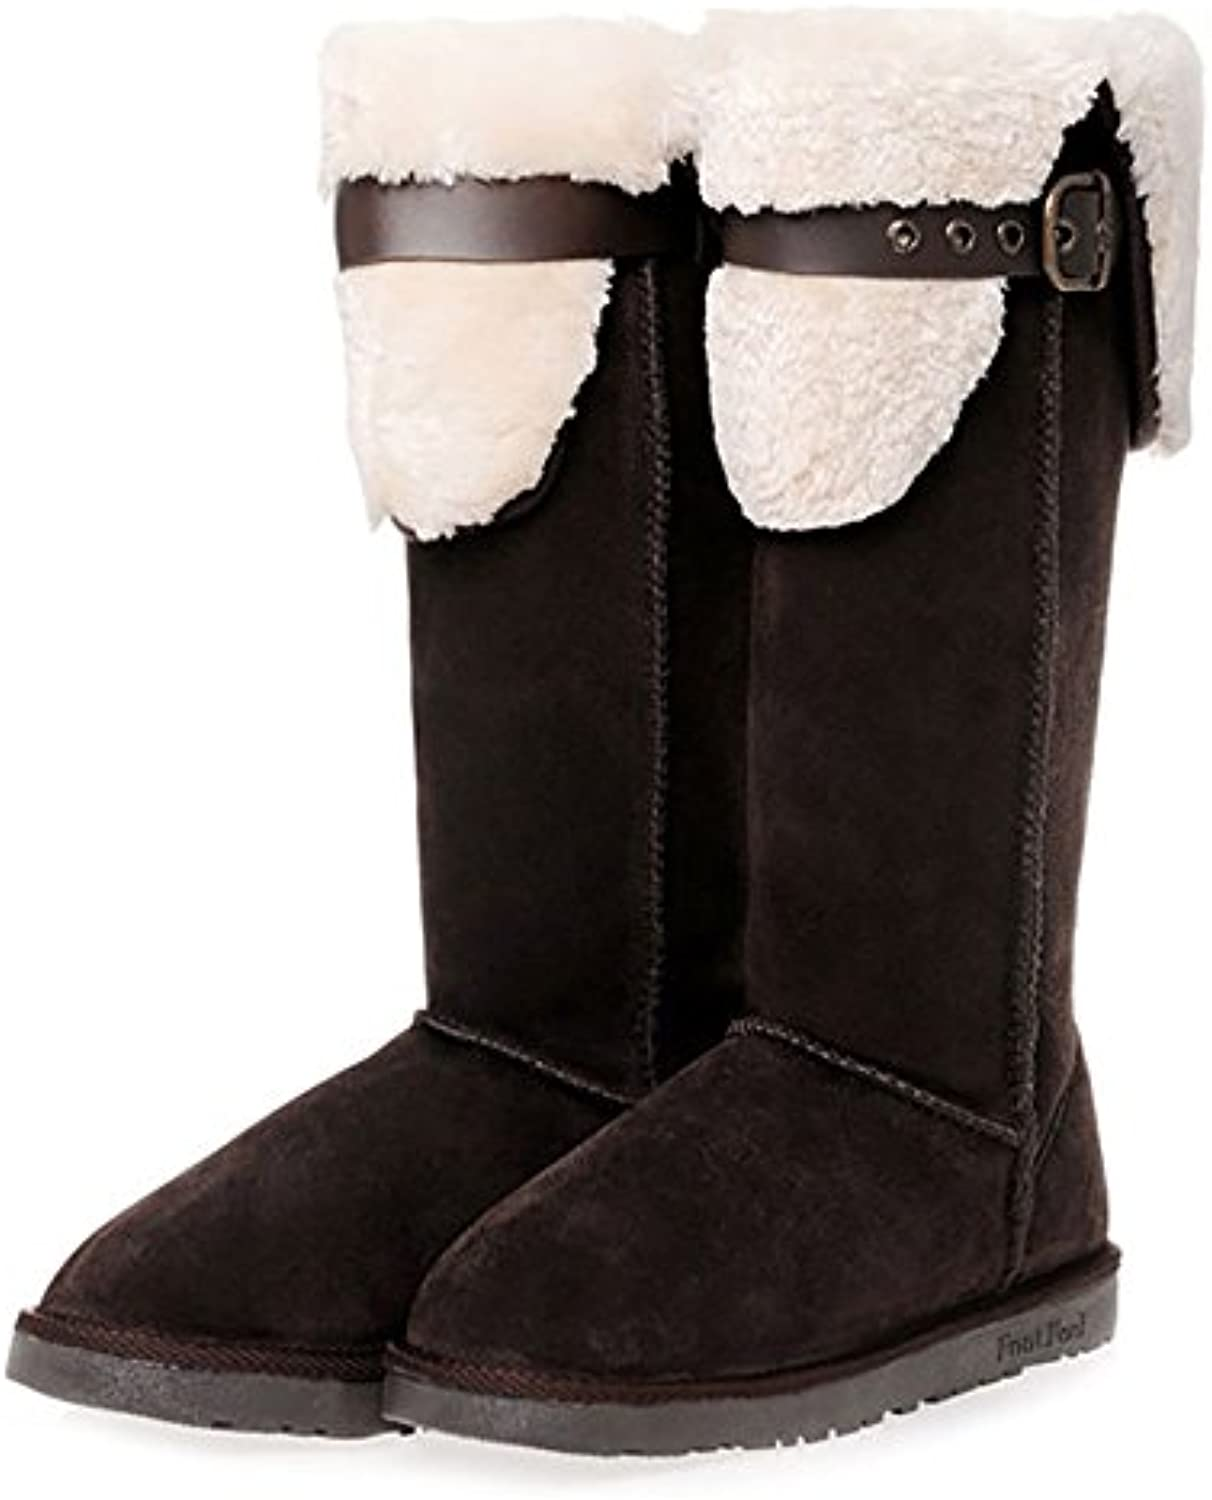 Footfeel Women's Warm Snow Boots Bow Tall Leather Fur